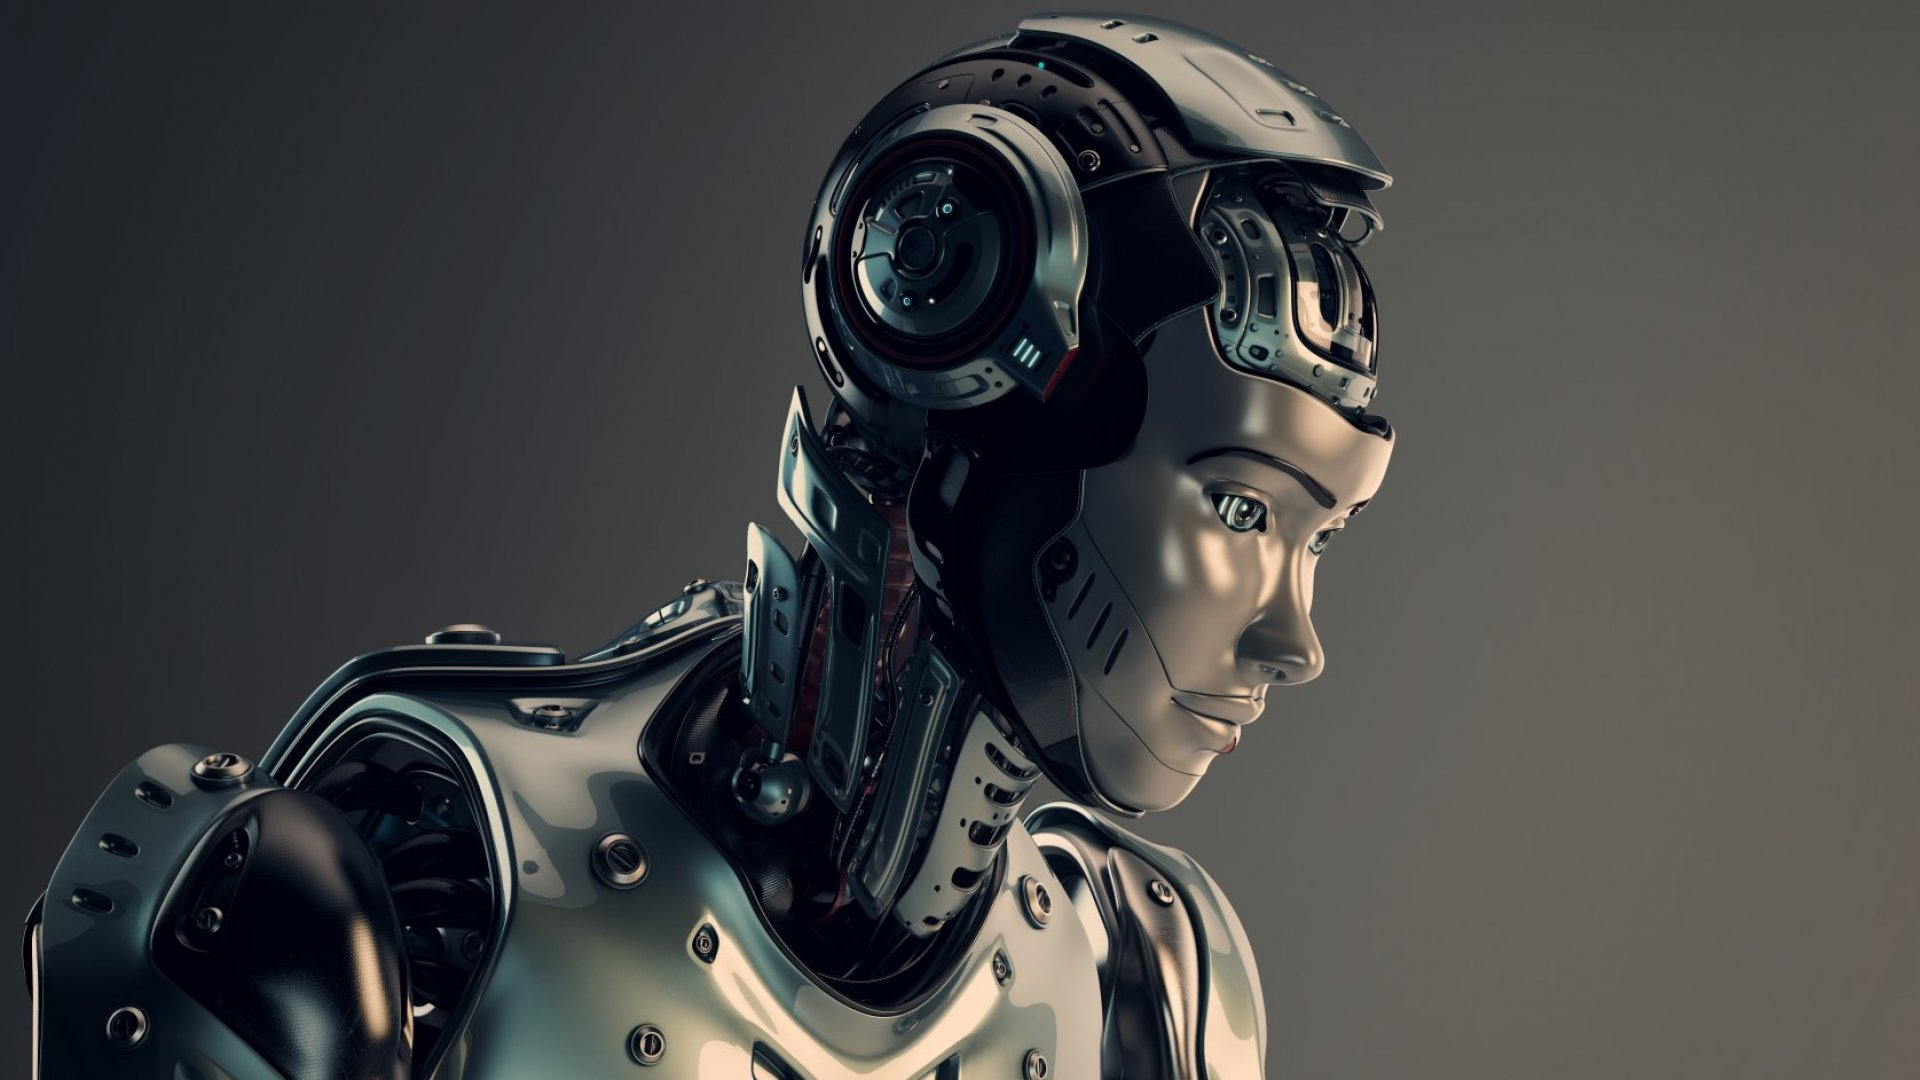 One day, humans and robots will merge.